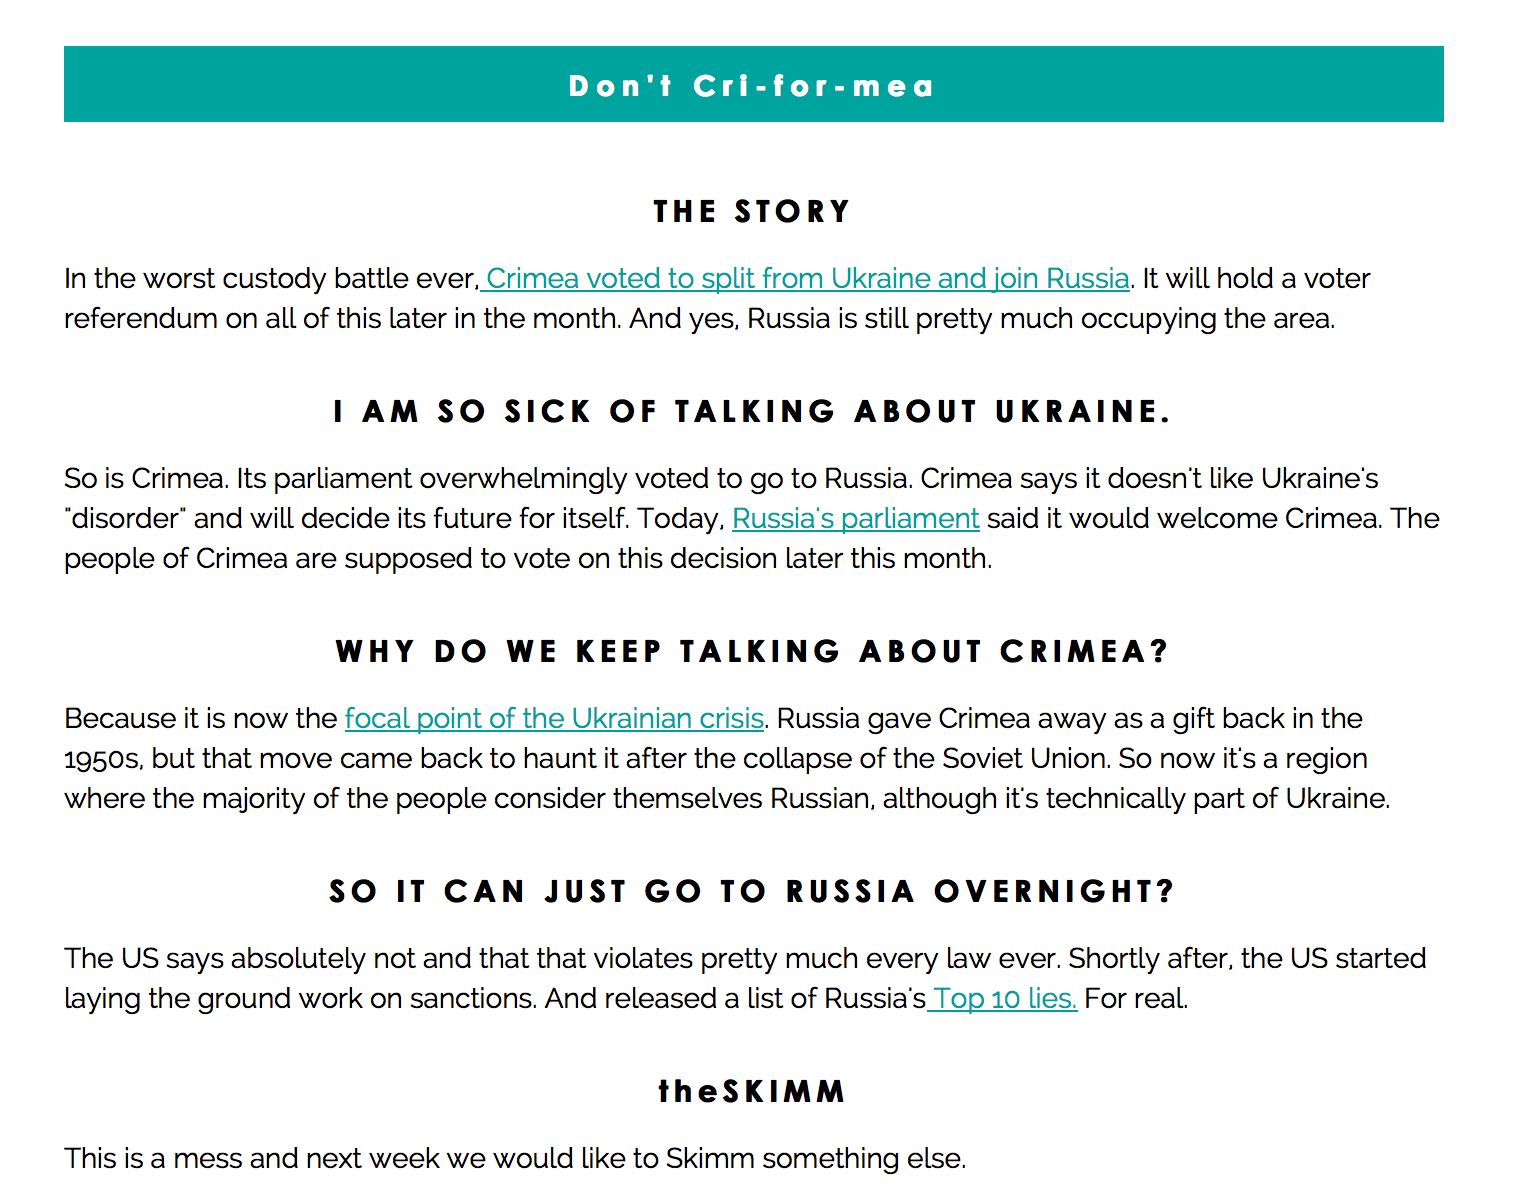 1. Subscribe to The Skimm